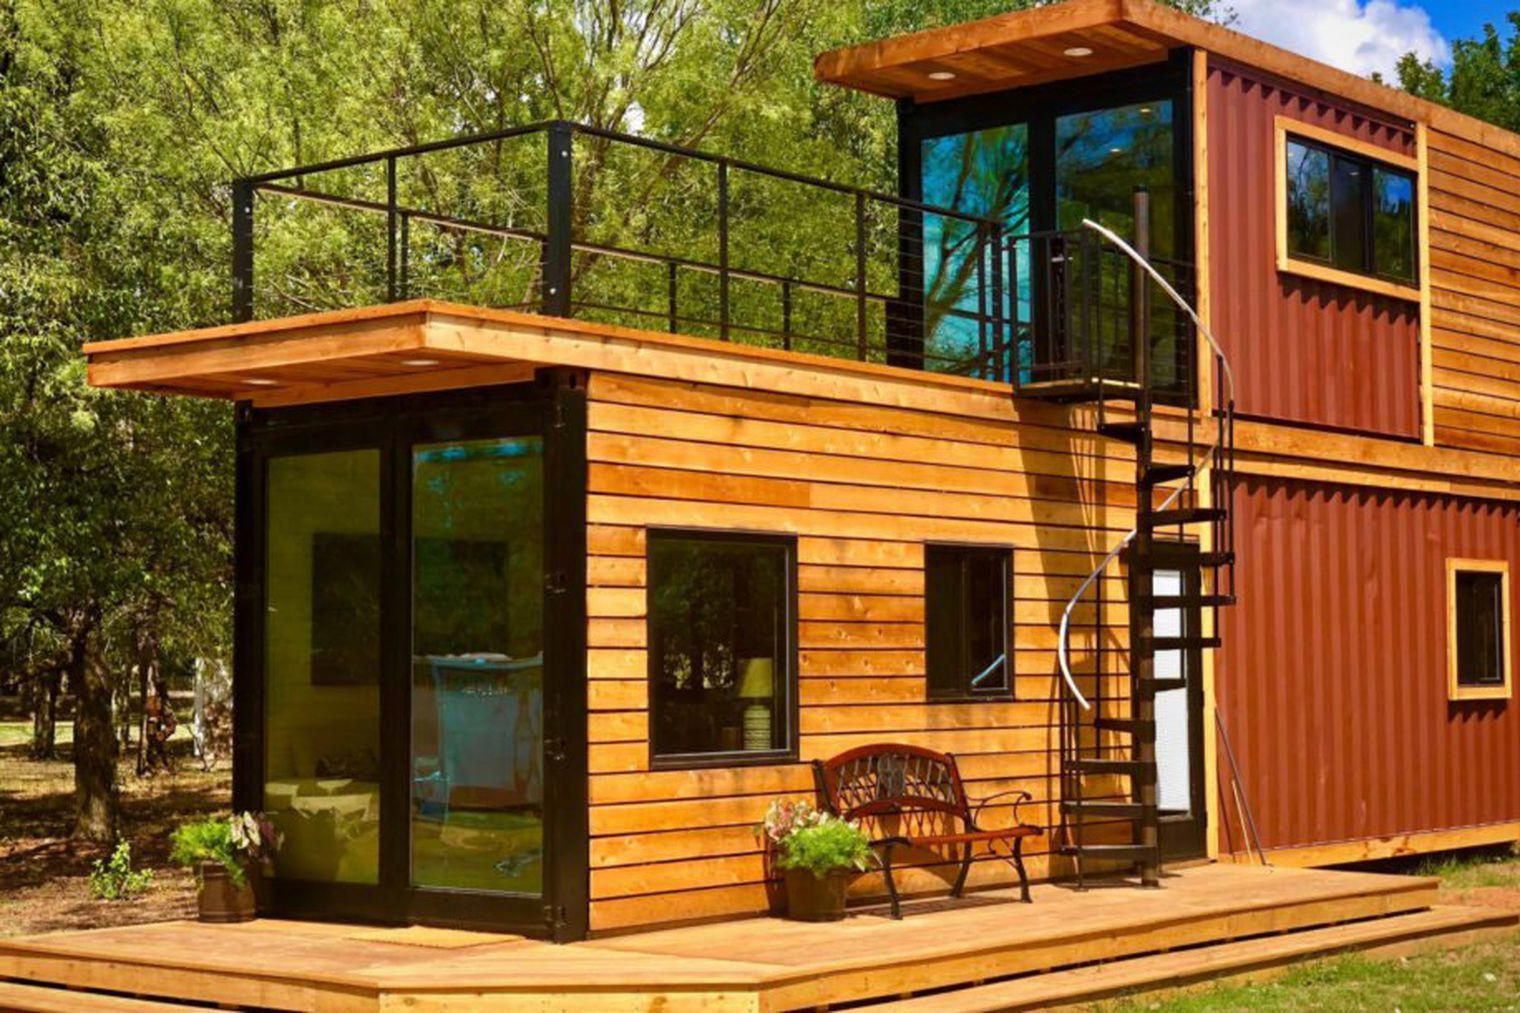 Shipping Container Home Has A Sweet Roof Terrace Curbed Buildingadeck Cargo Home Container Homes For Sale Container House